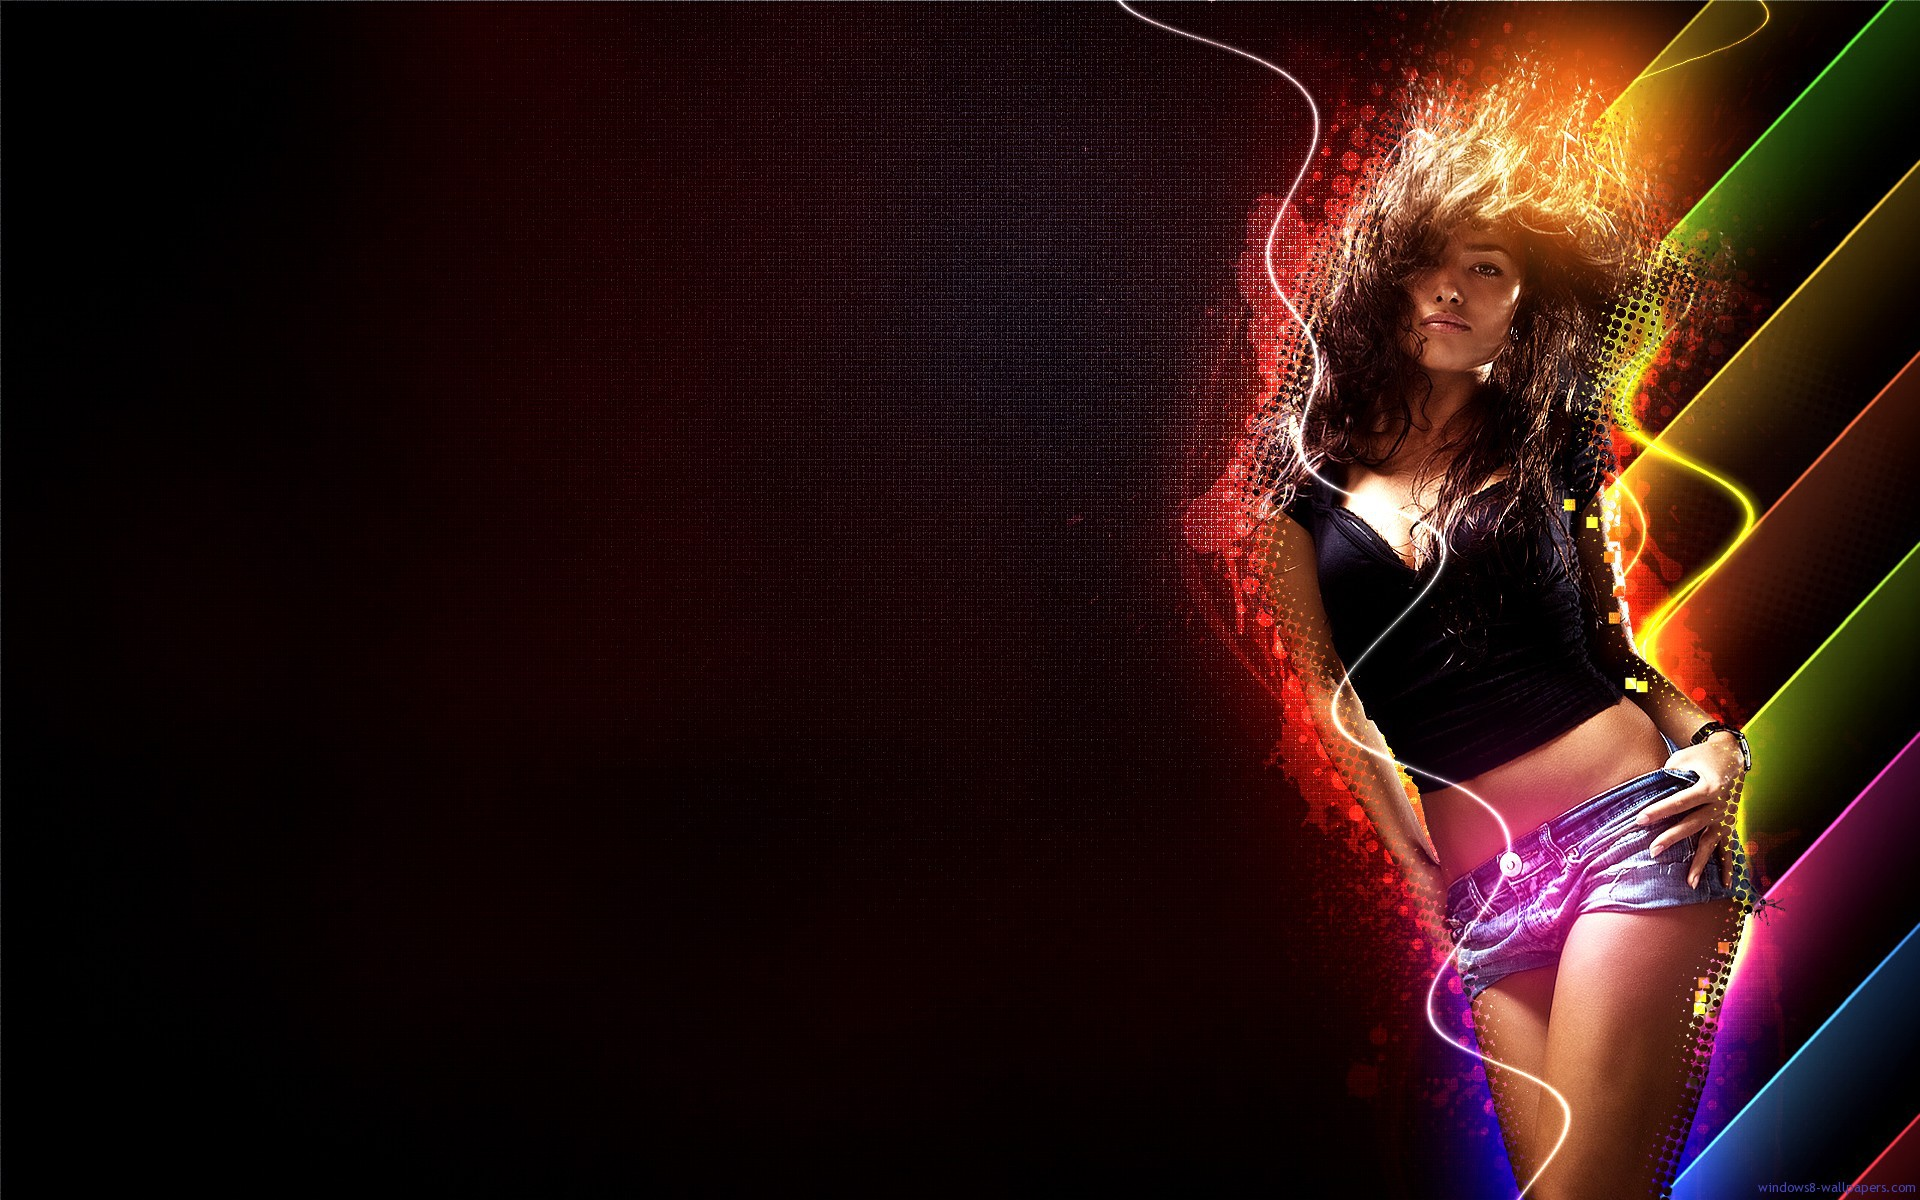 Passionate girl dance wallpapers and images   wallpapers pictures 1920x1200